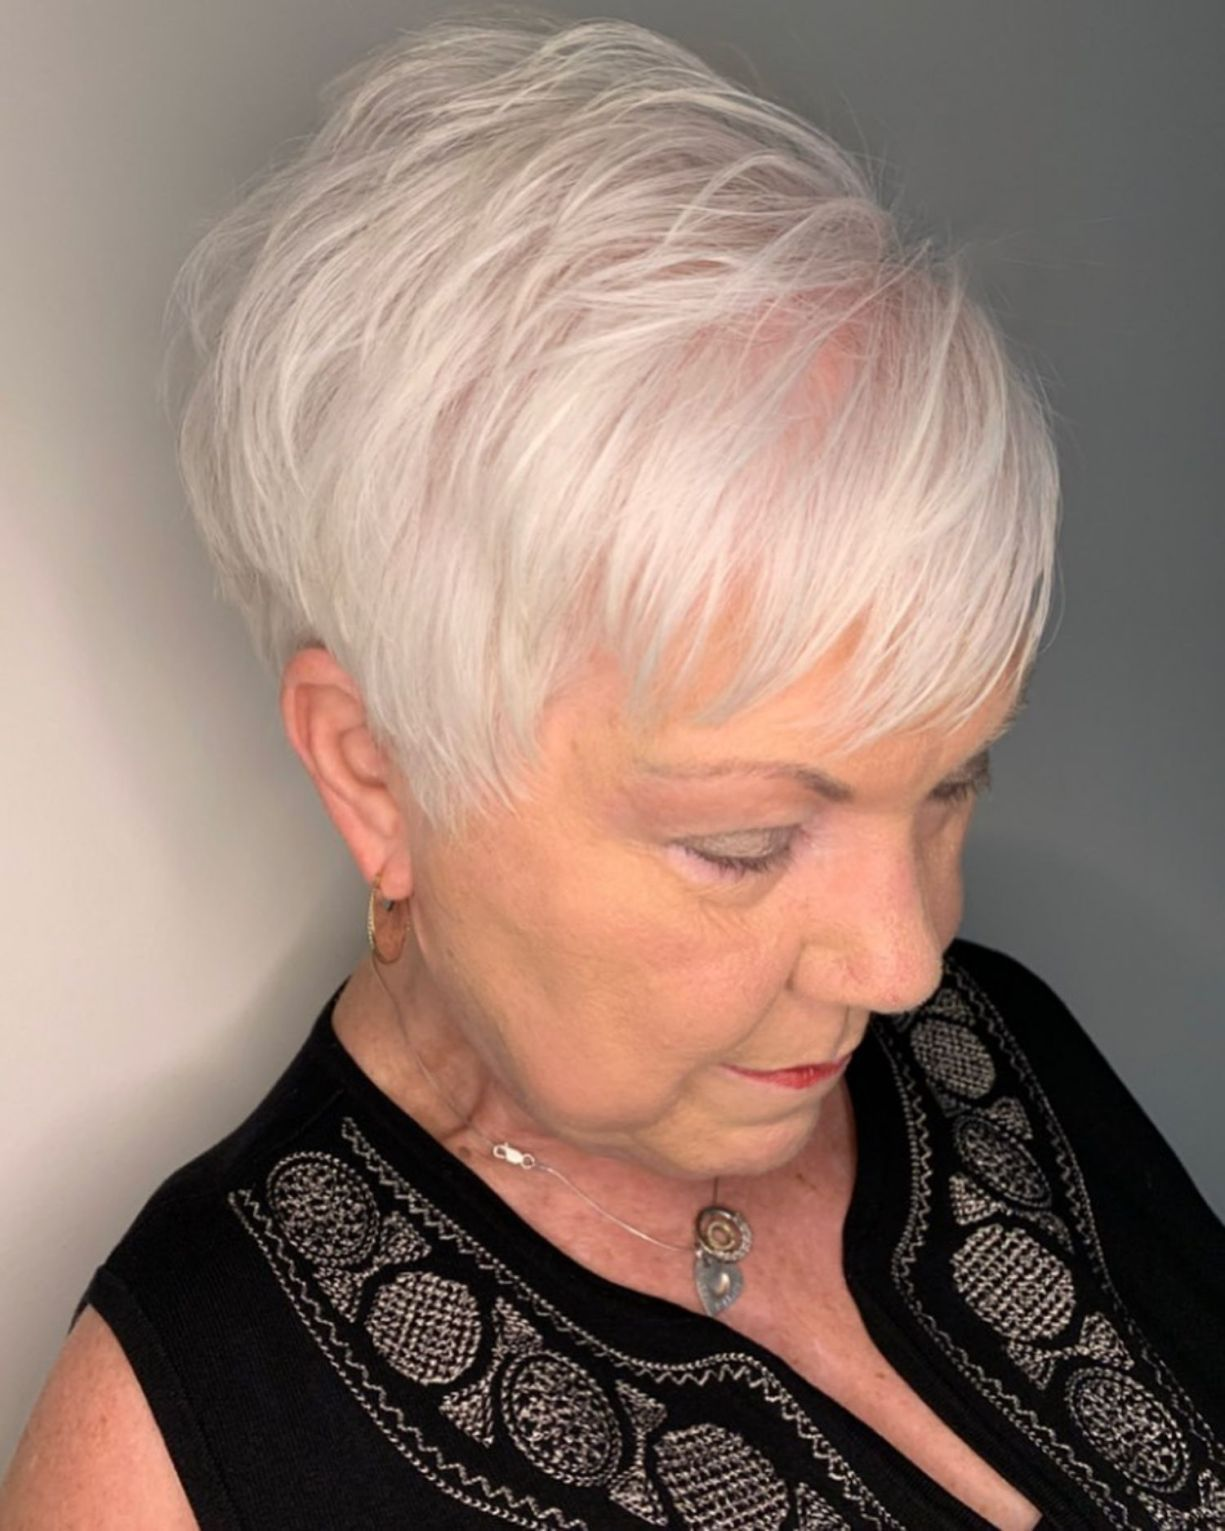 Feathered Pixie Haircut For Women Over 70 Kapsels Dun Grijs Haar Kort Kapsel Grijs Haar Kapsels Dun Haar